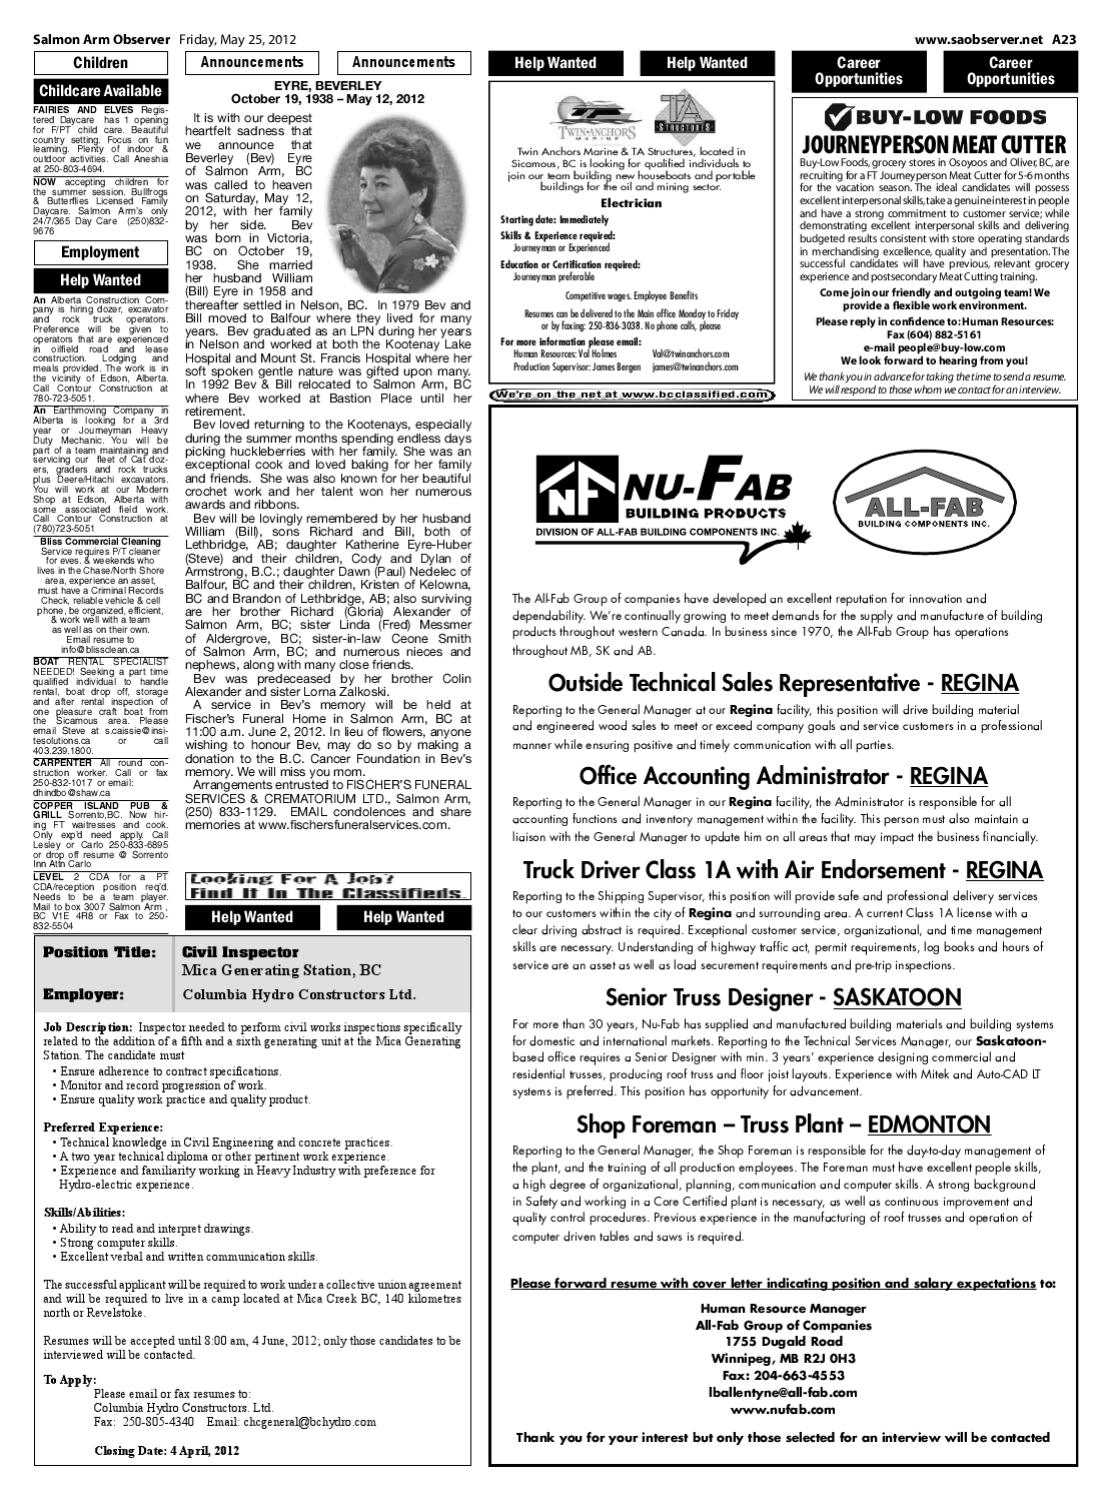 Salmon Arm Observer, May 25, 2012 by Black Press Media Group